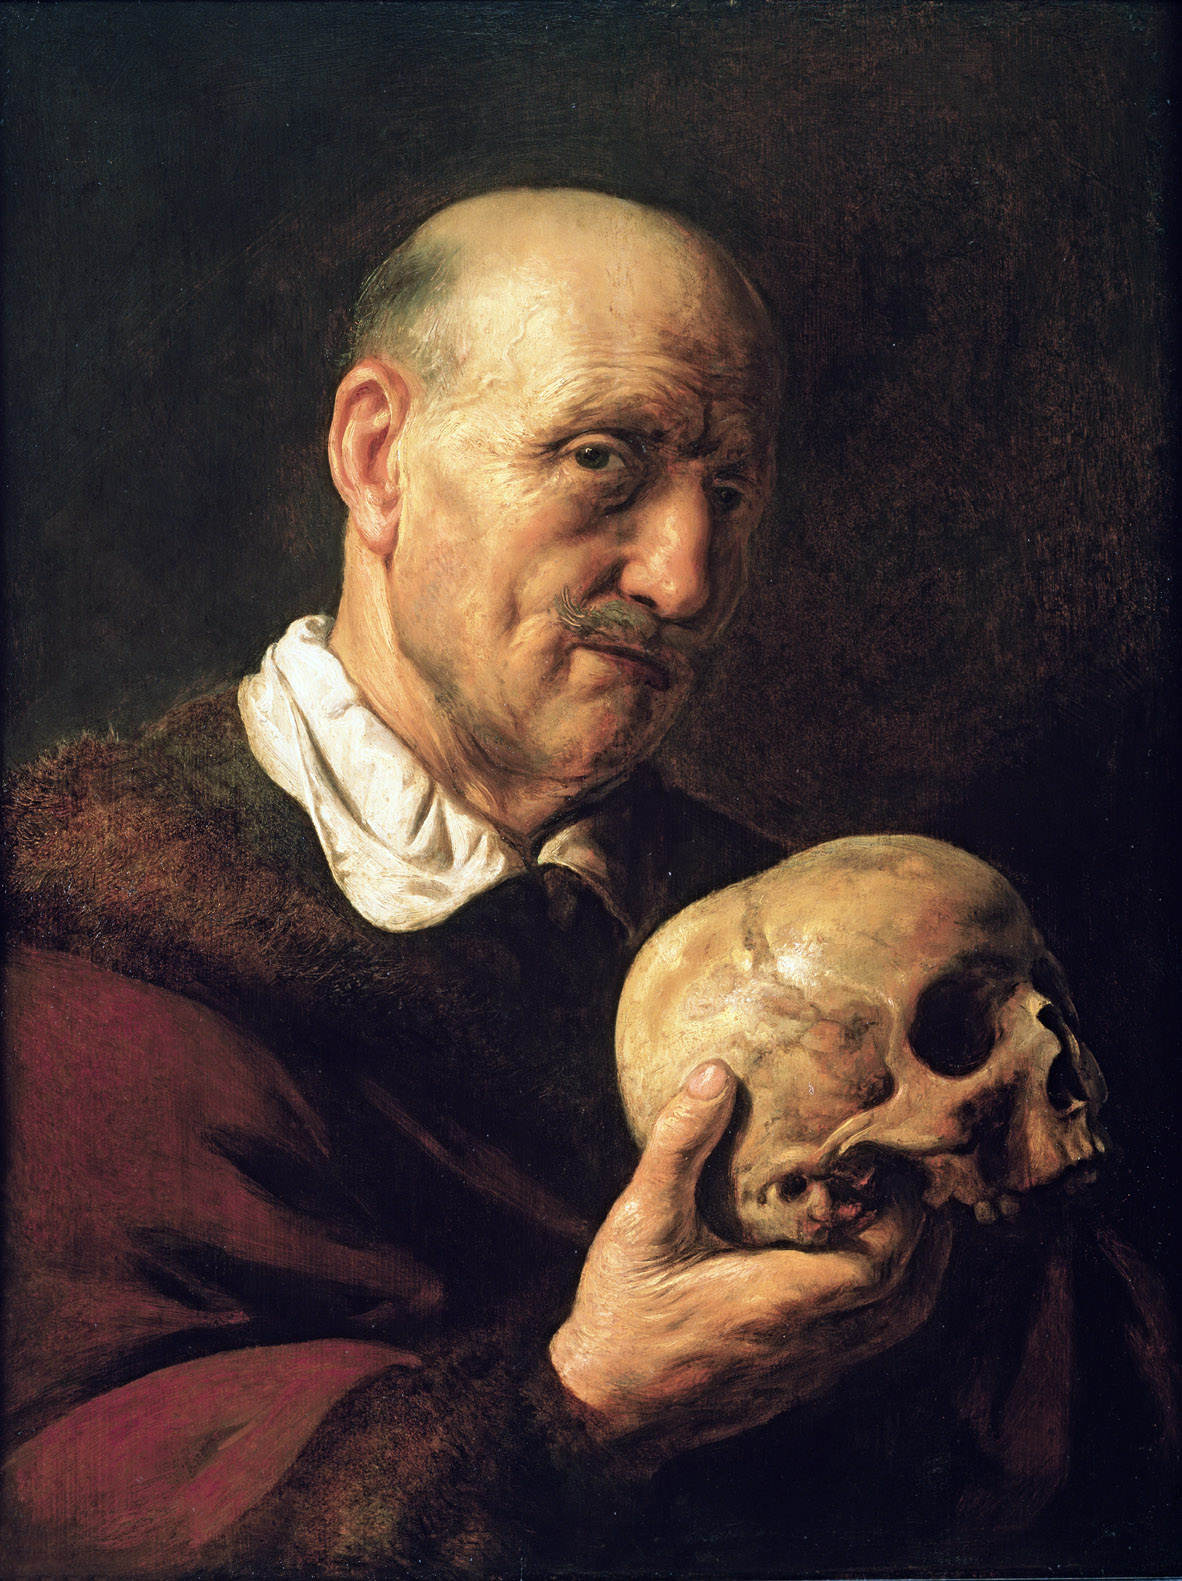 Vanitas, by Jan Lievens, c. 1640.